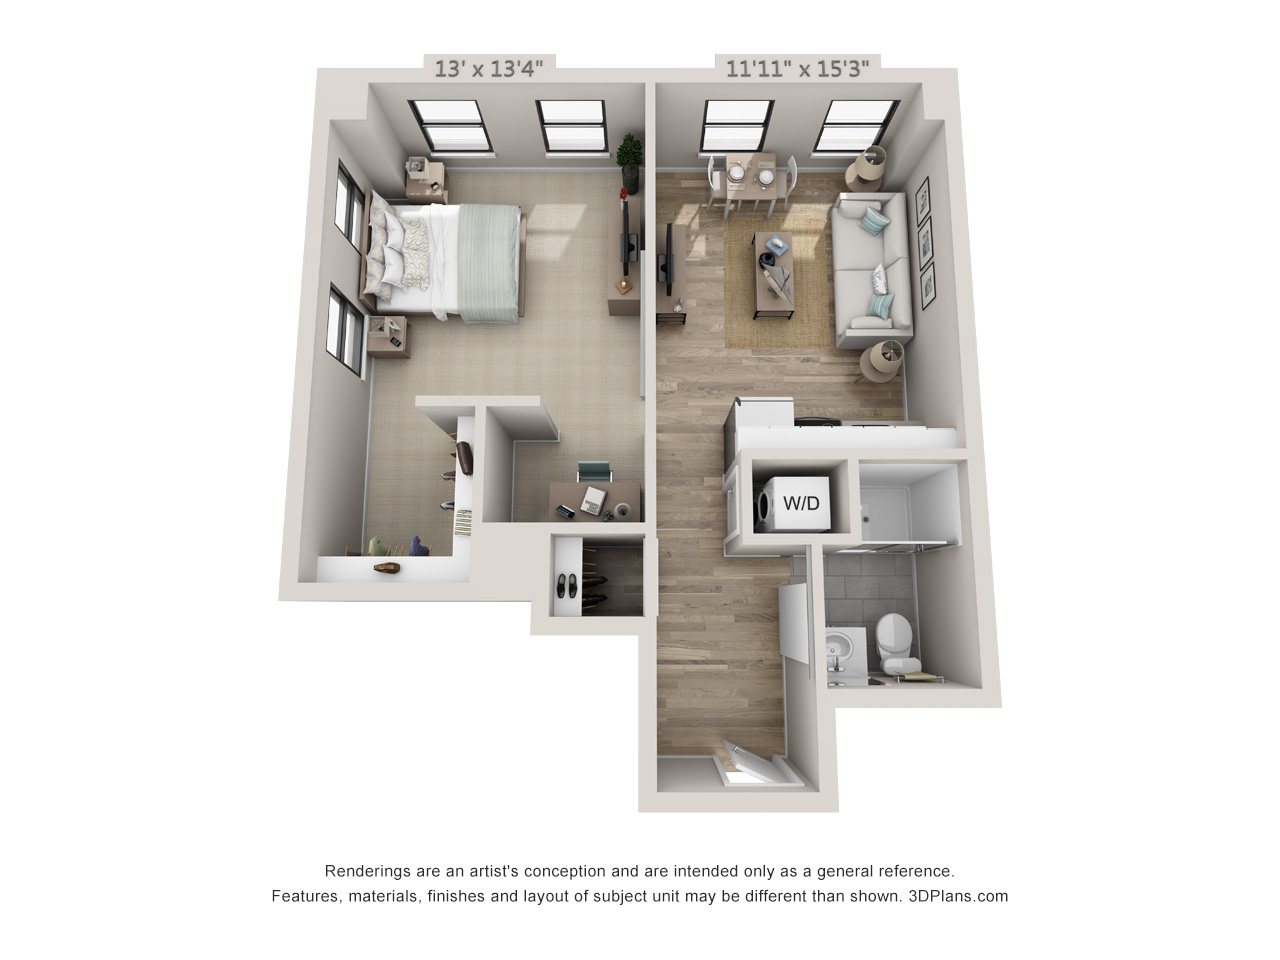 Center apartments in philadelphia. Apartment clipart city apartment